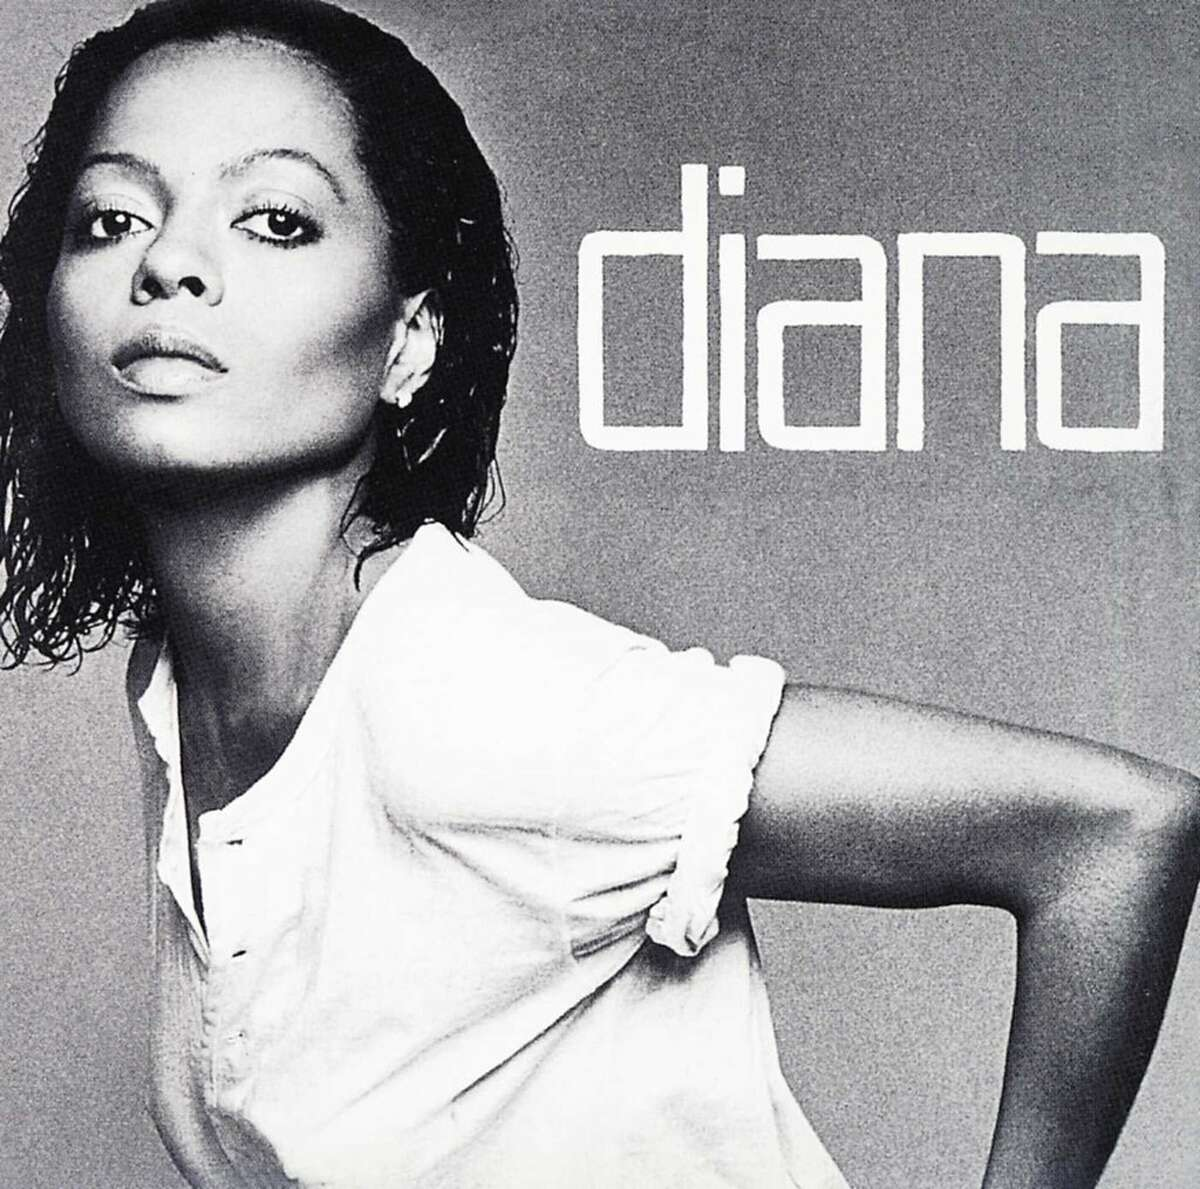 Diana Diana Ross Hits: Upside Down, I'm Coming Out